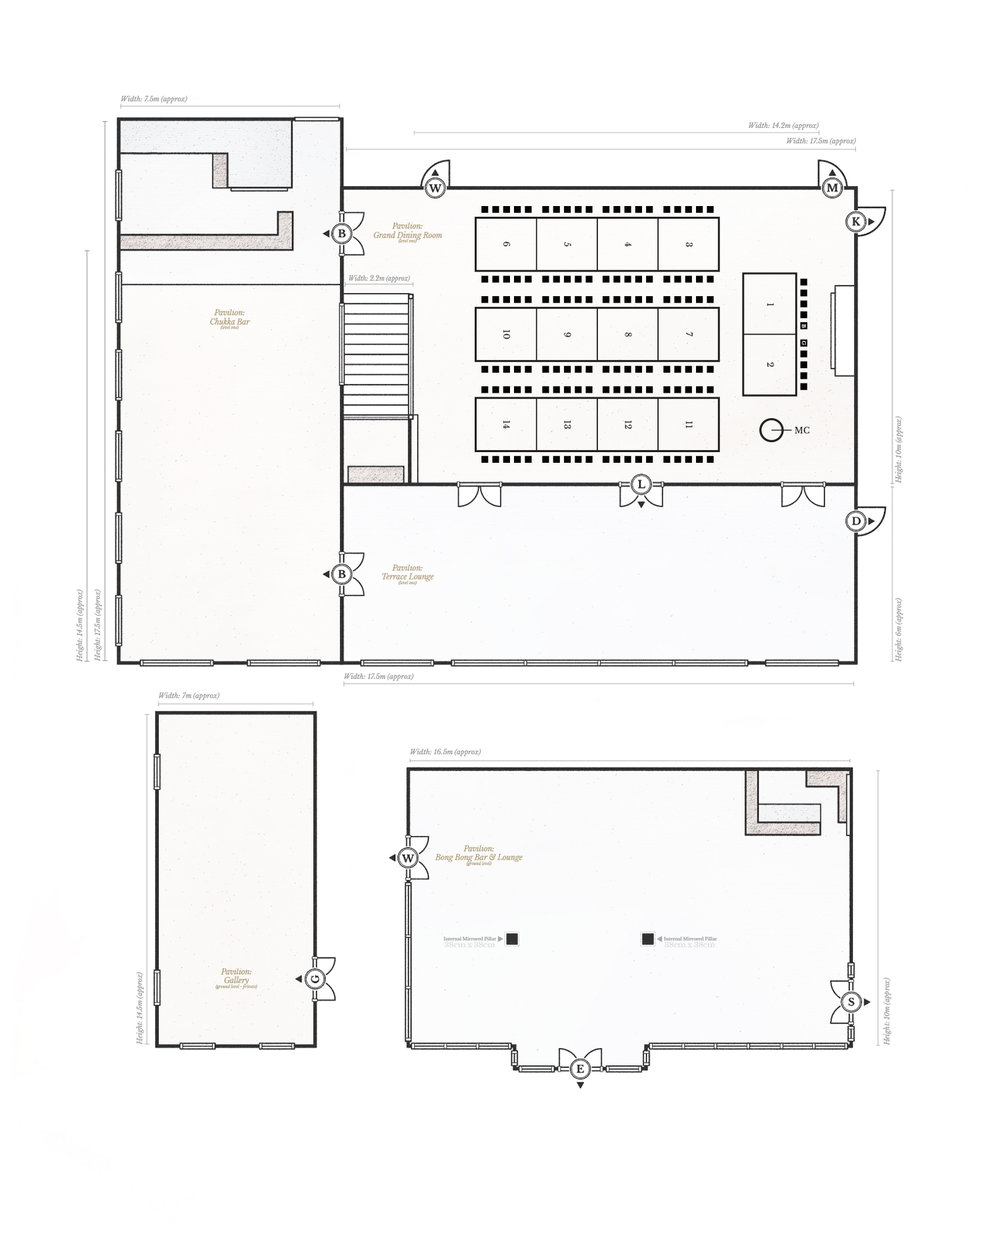 Hopewood-House-Pavilion-Table-Layout-.jpg